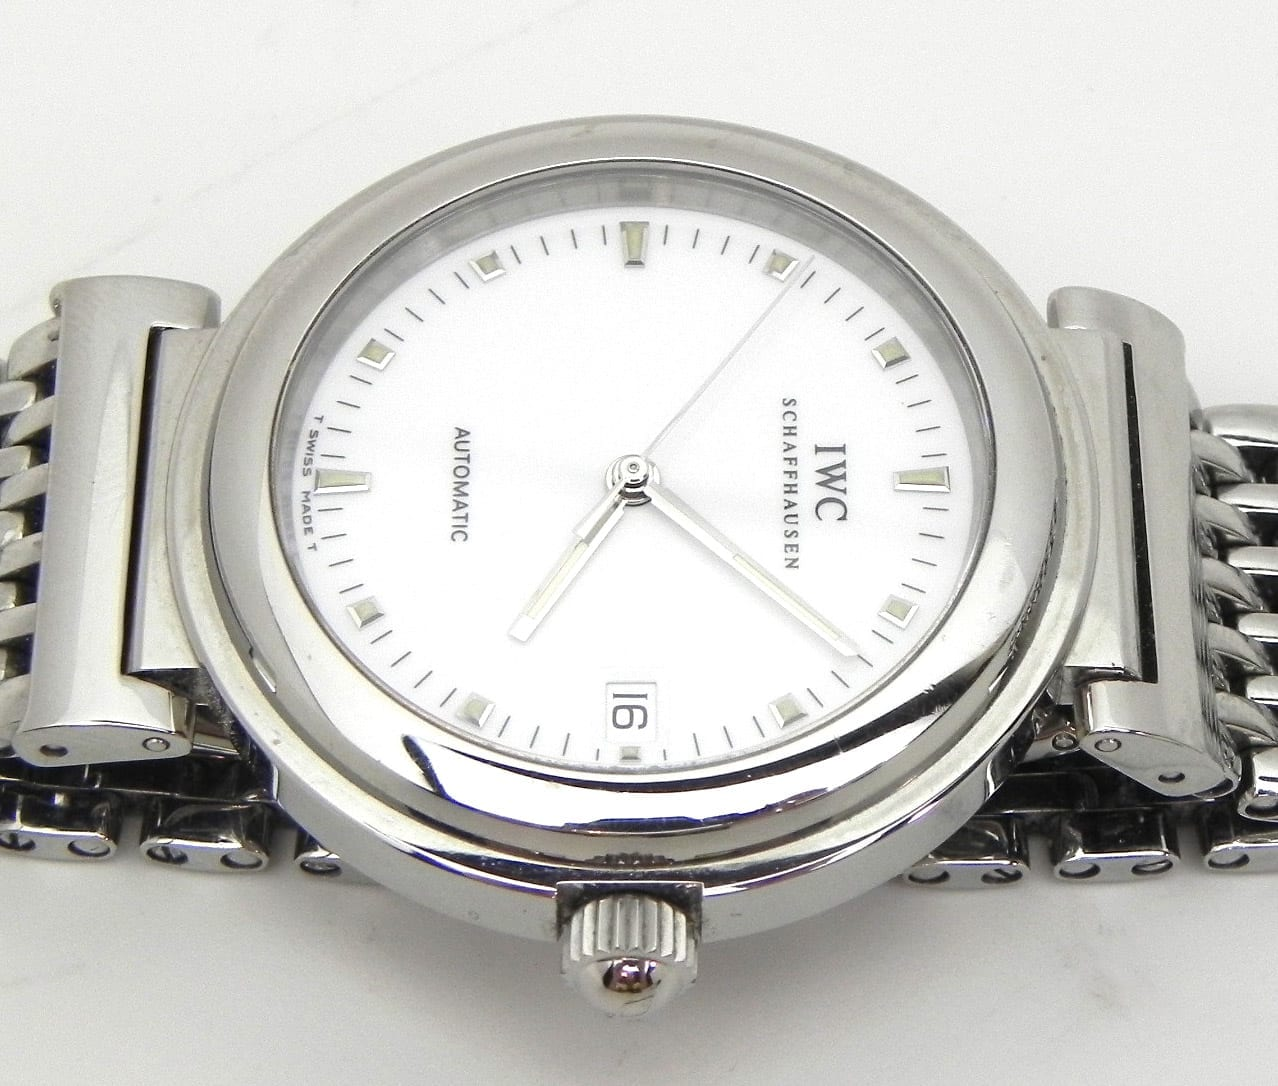 About IWC watches